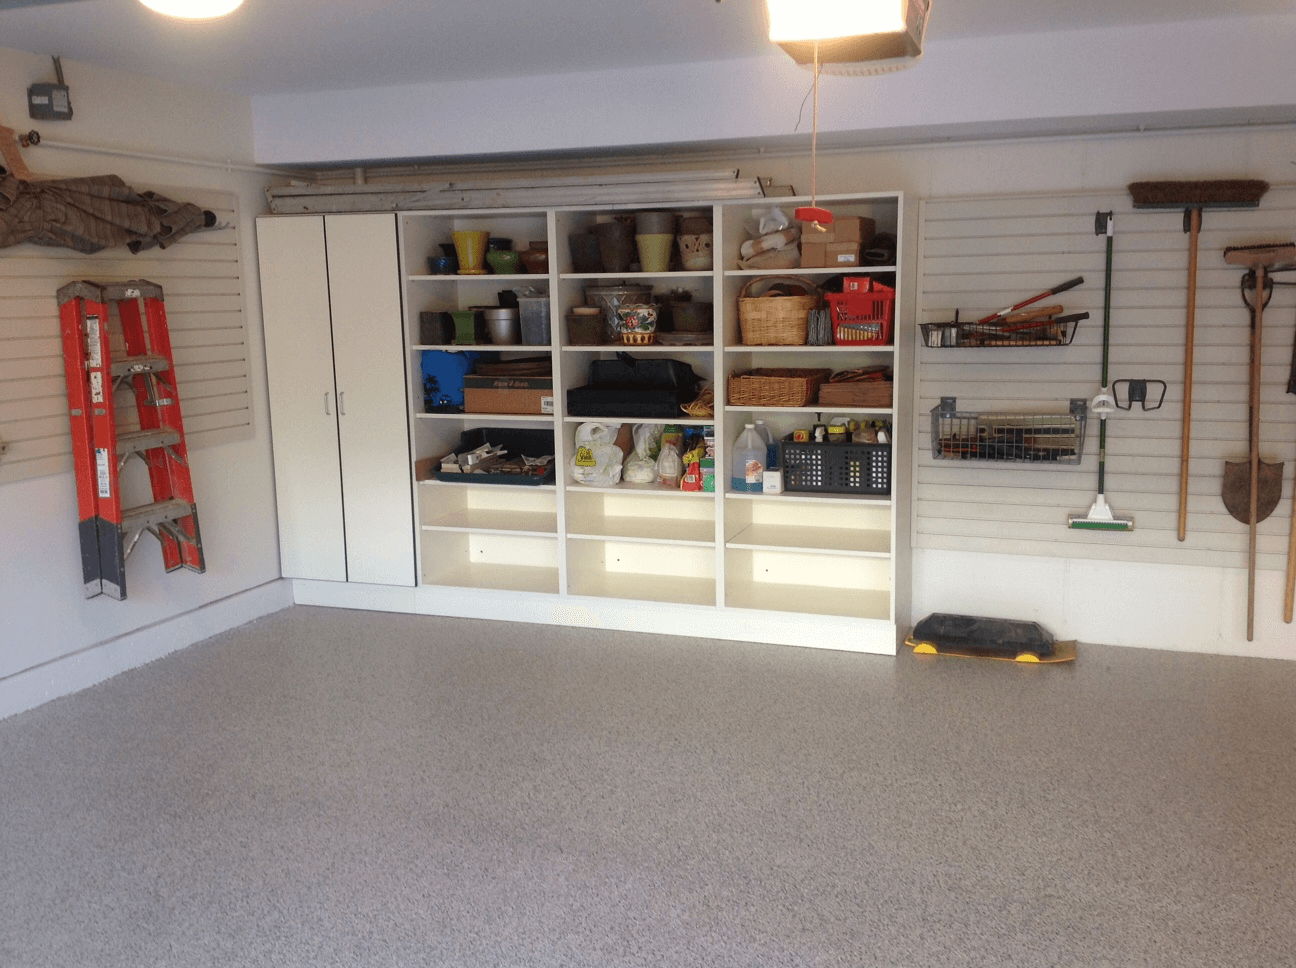 HOW TO MAKE SMALL GARAGE LOOK BIGGER WITH NICE CABINET ORGANIZATION